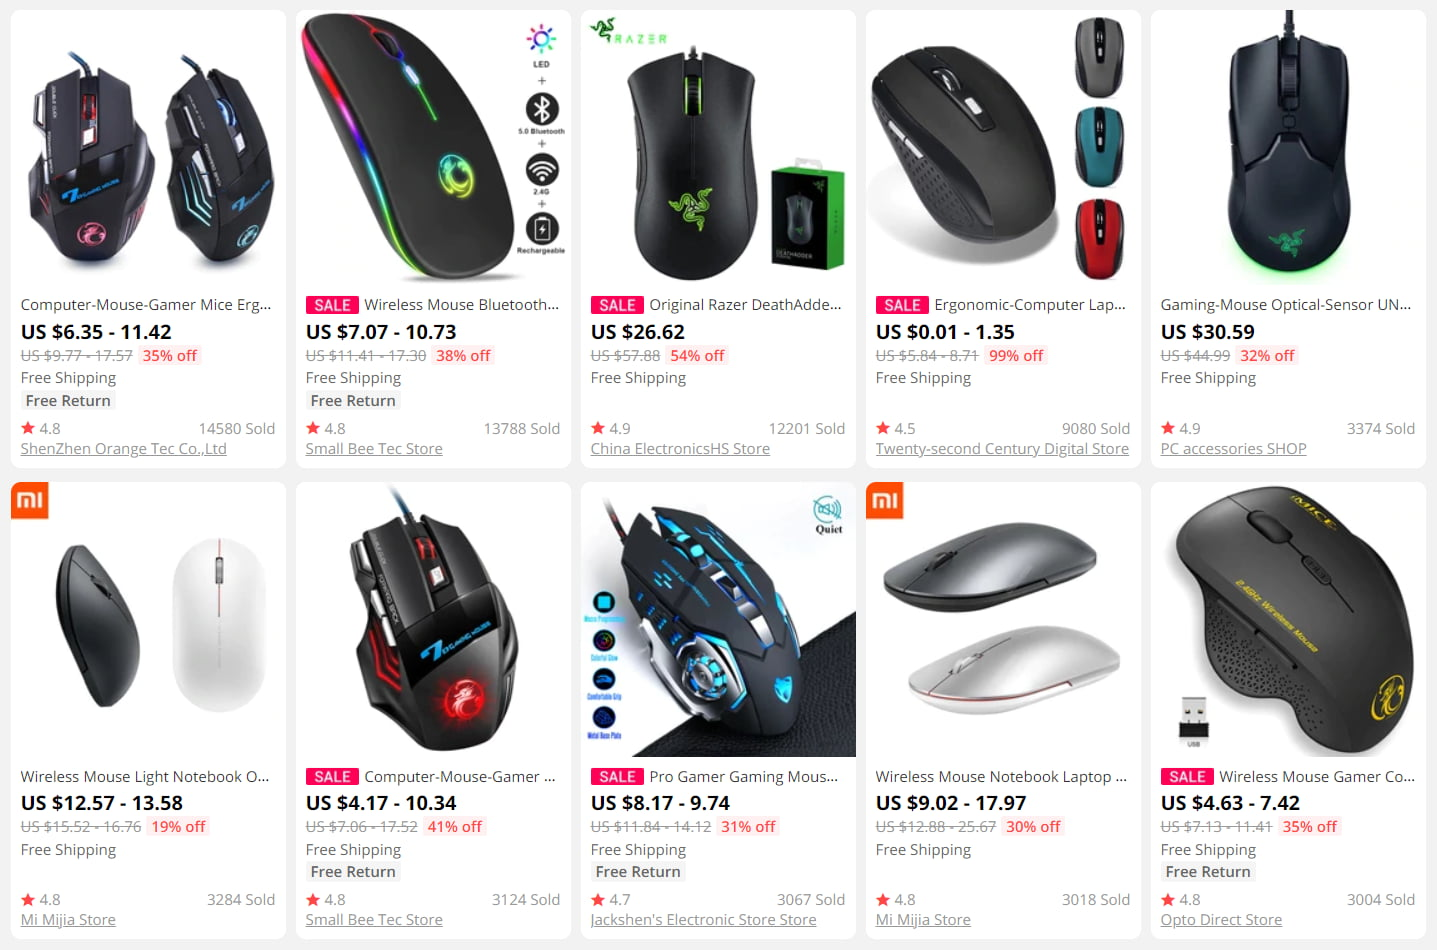 Gaming mice are a must for those who want to dropship video games gear